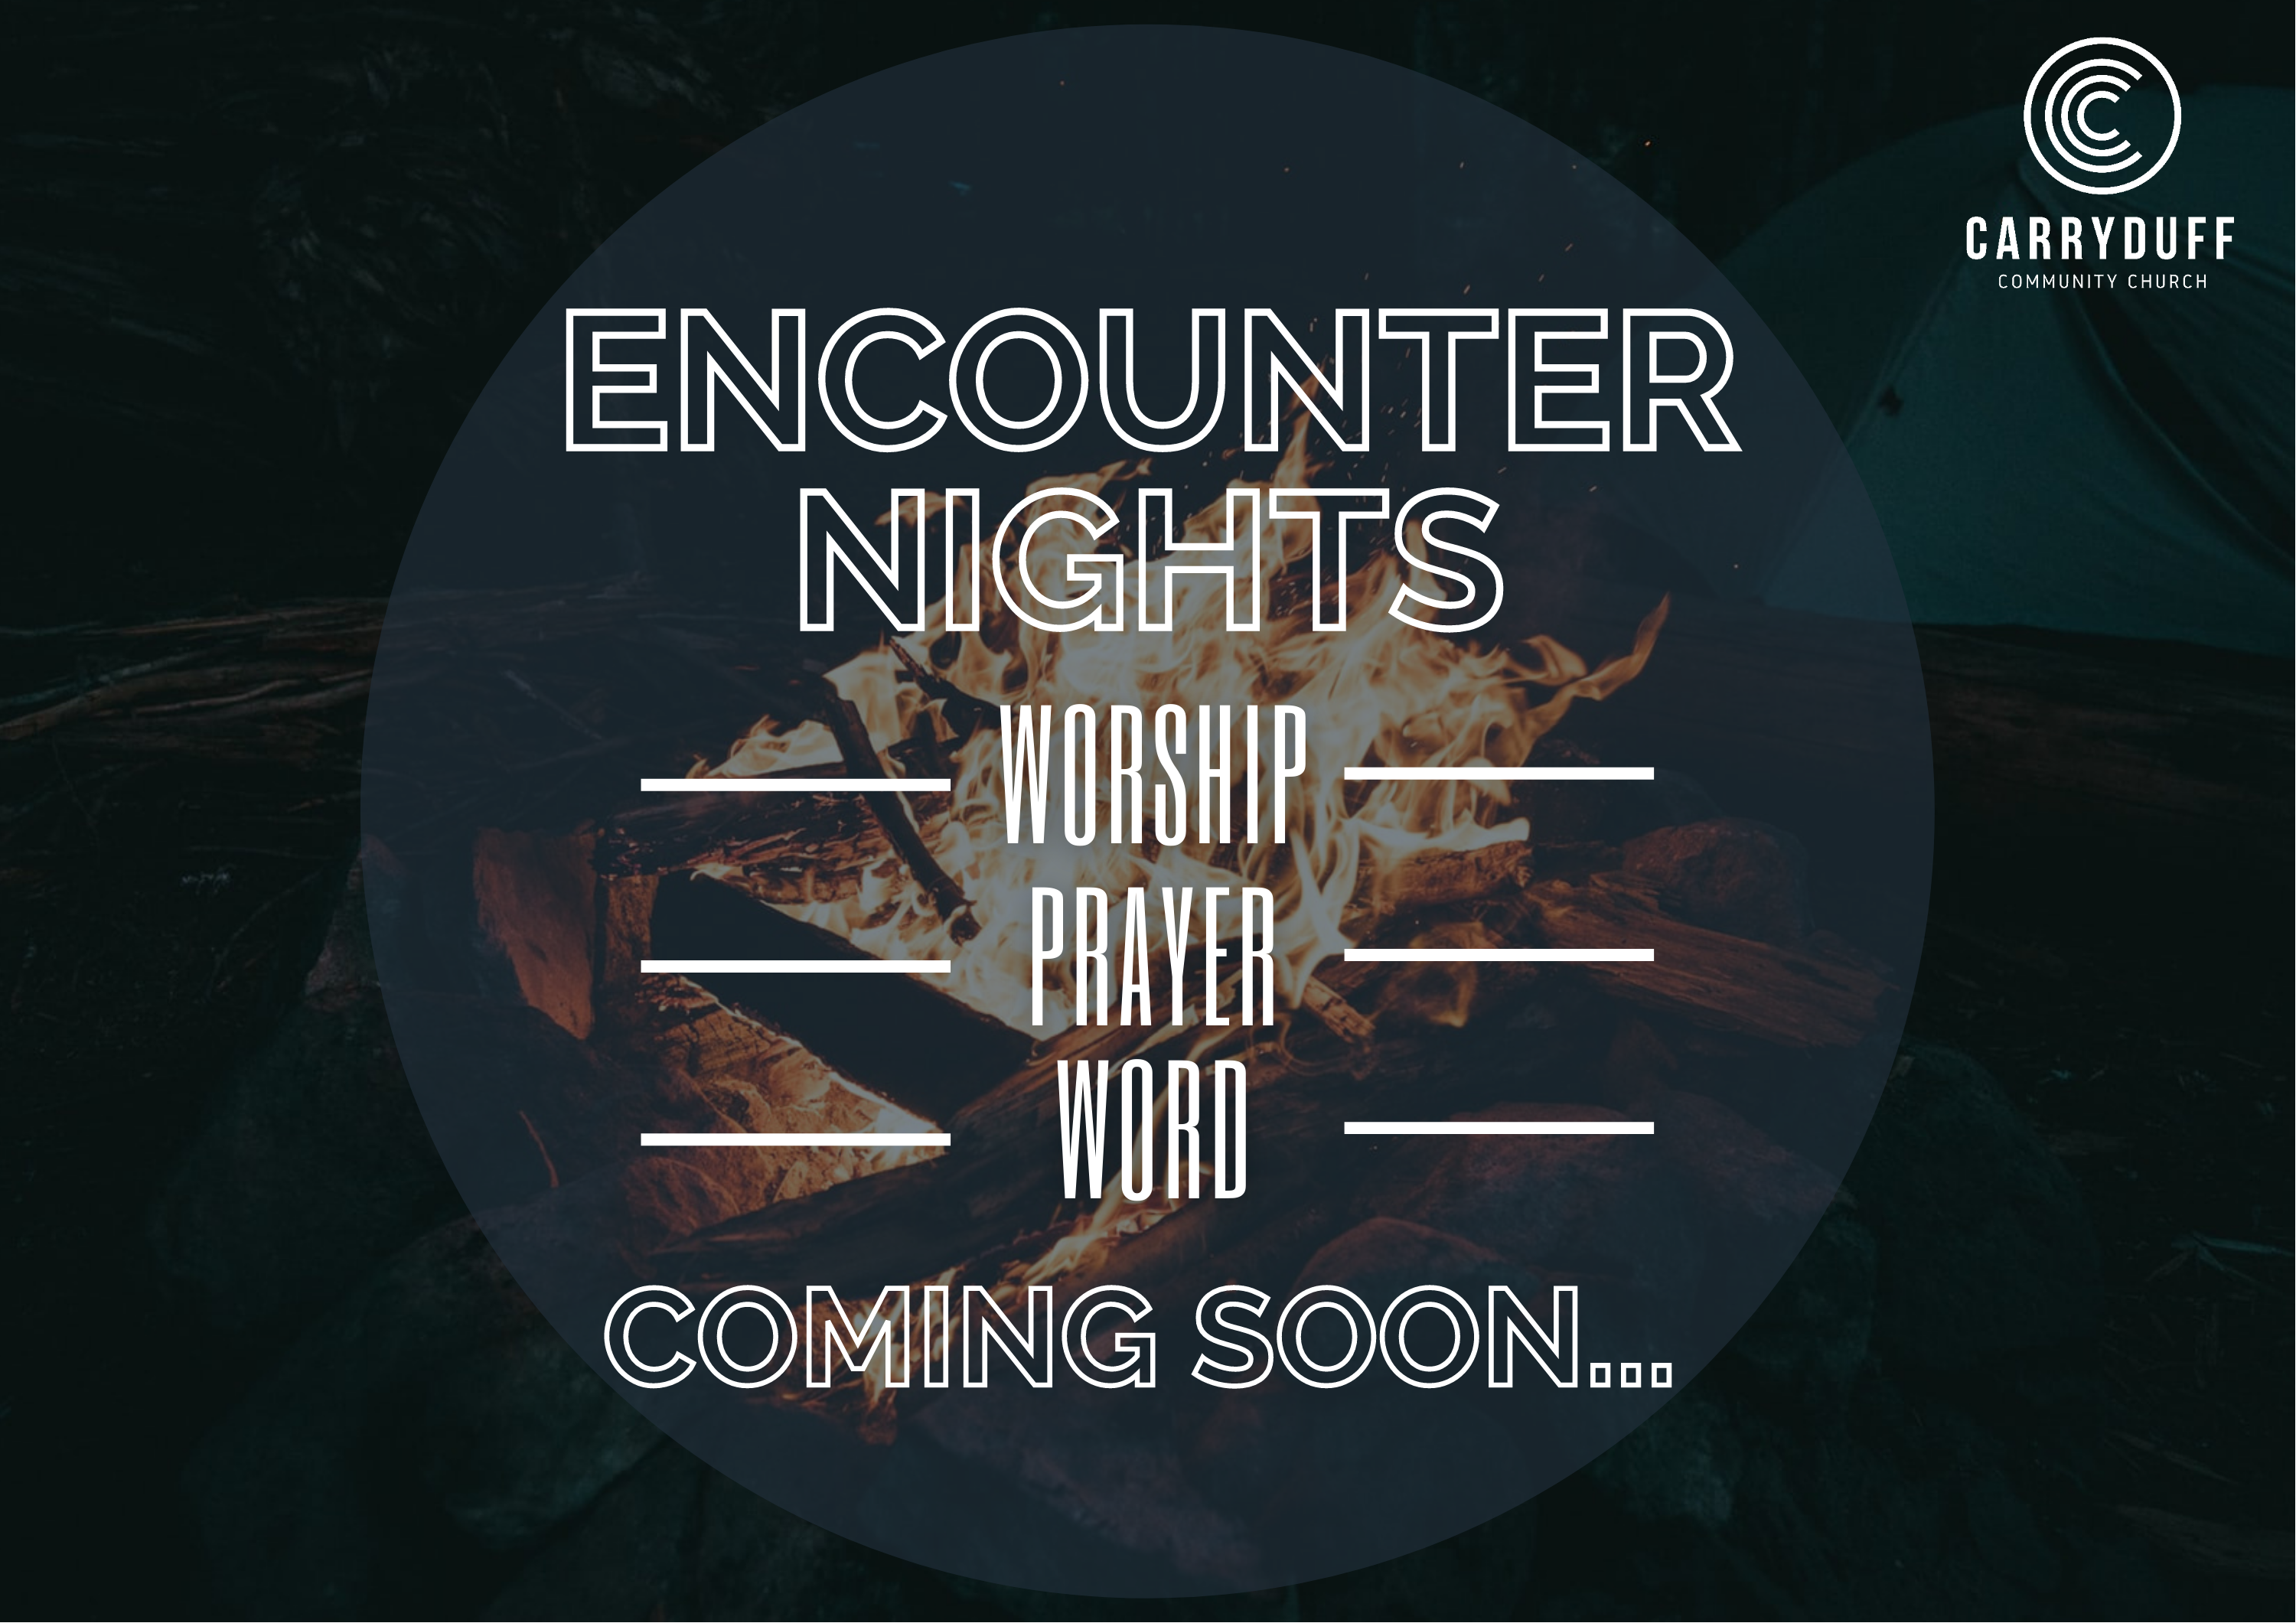 Encounter Nights - Carryduff Community Church